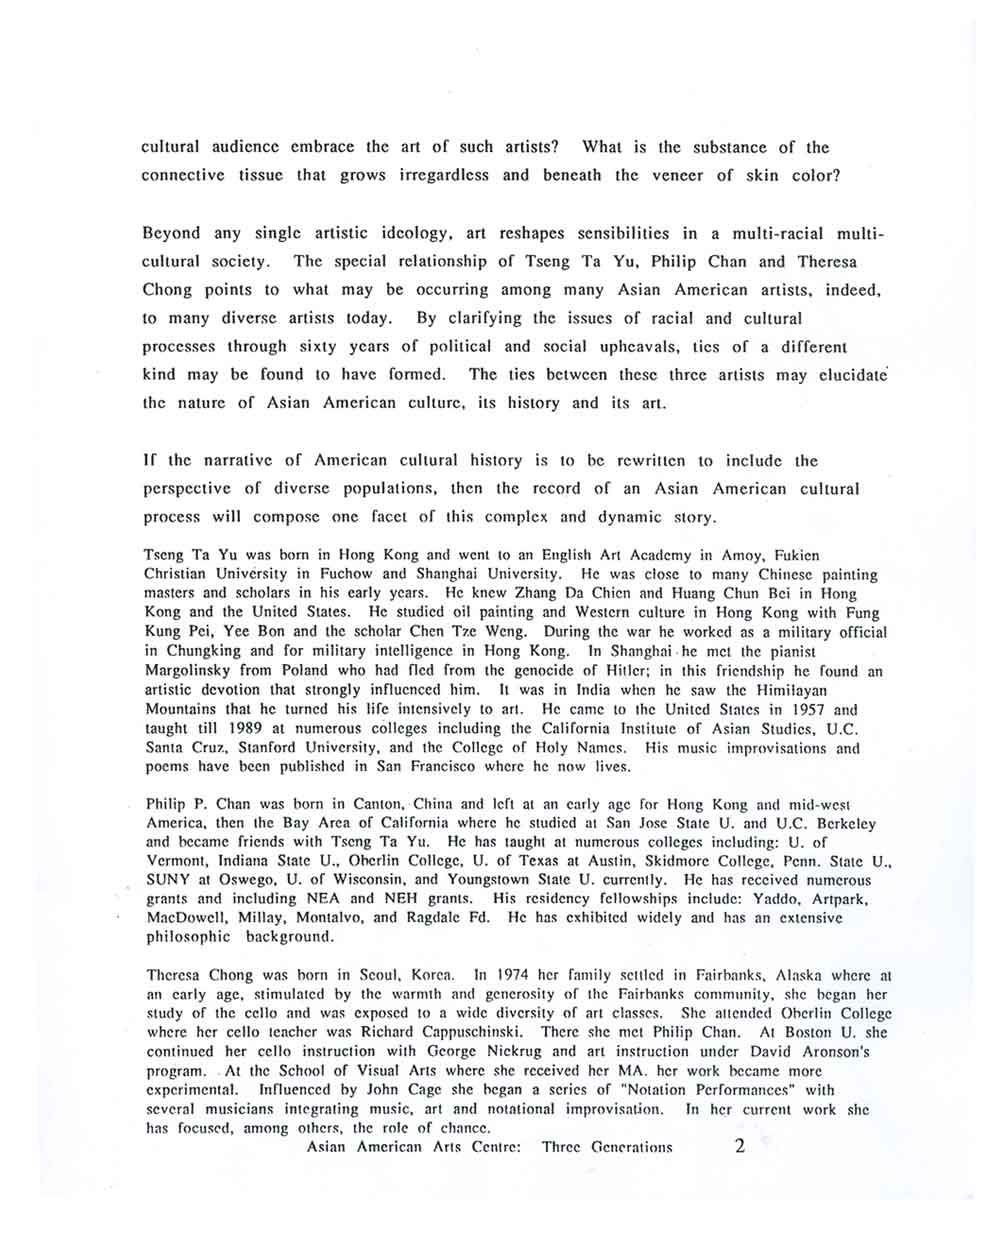 Three Generations press release, pg 2